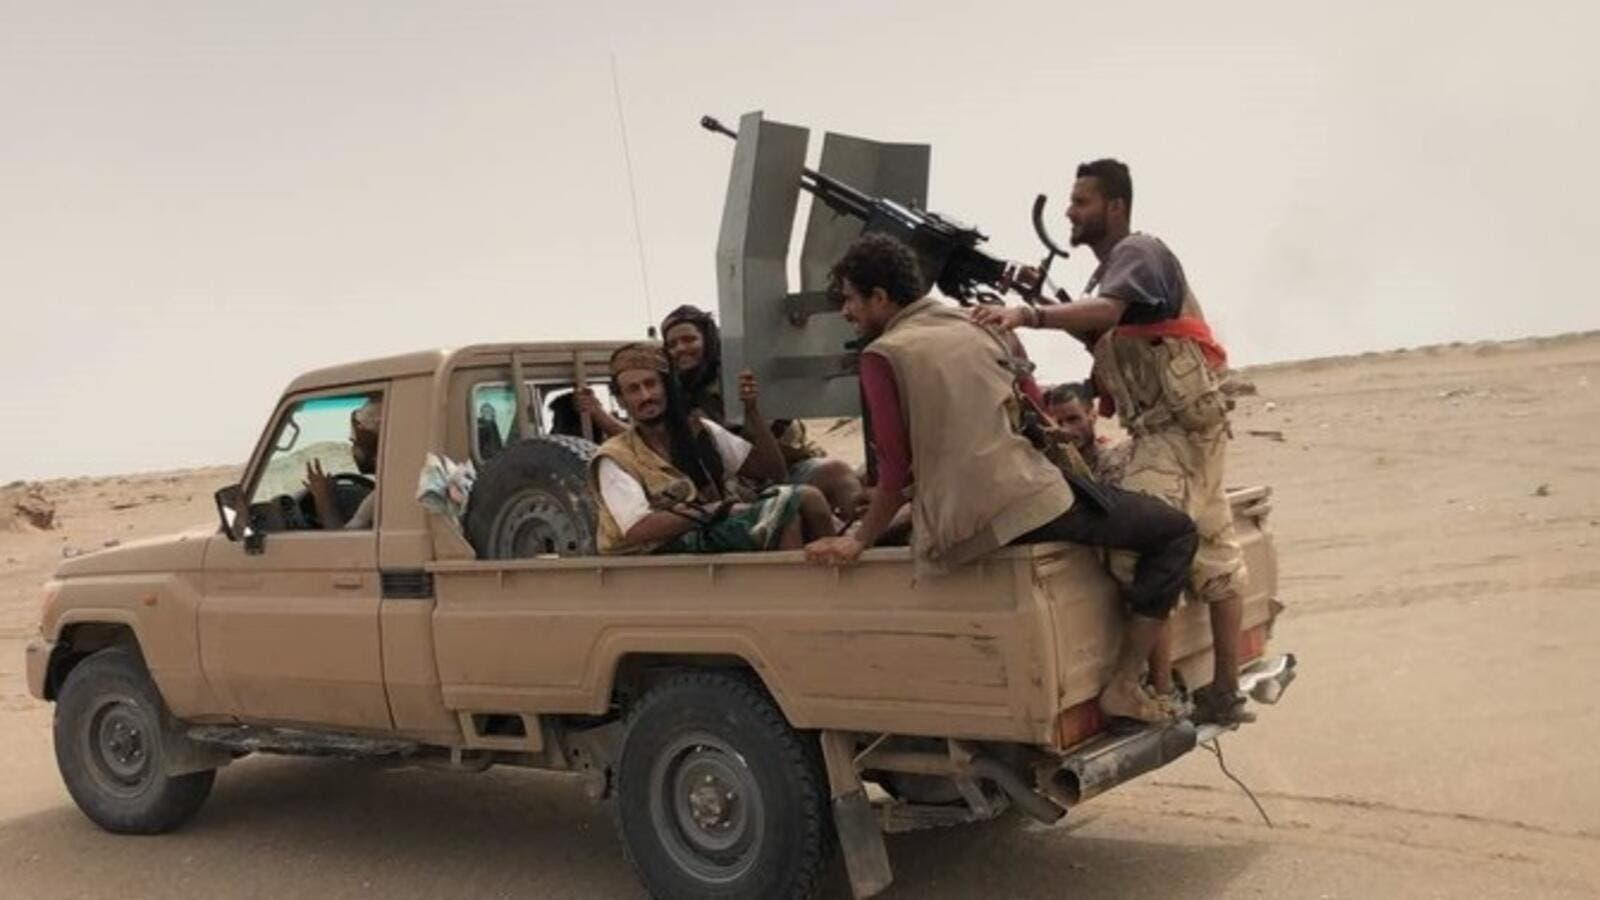 Yemeni pro-government forces during their fight against Iran backed Houthi militia near Hodeidah, Yemen. (AFP)